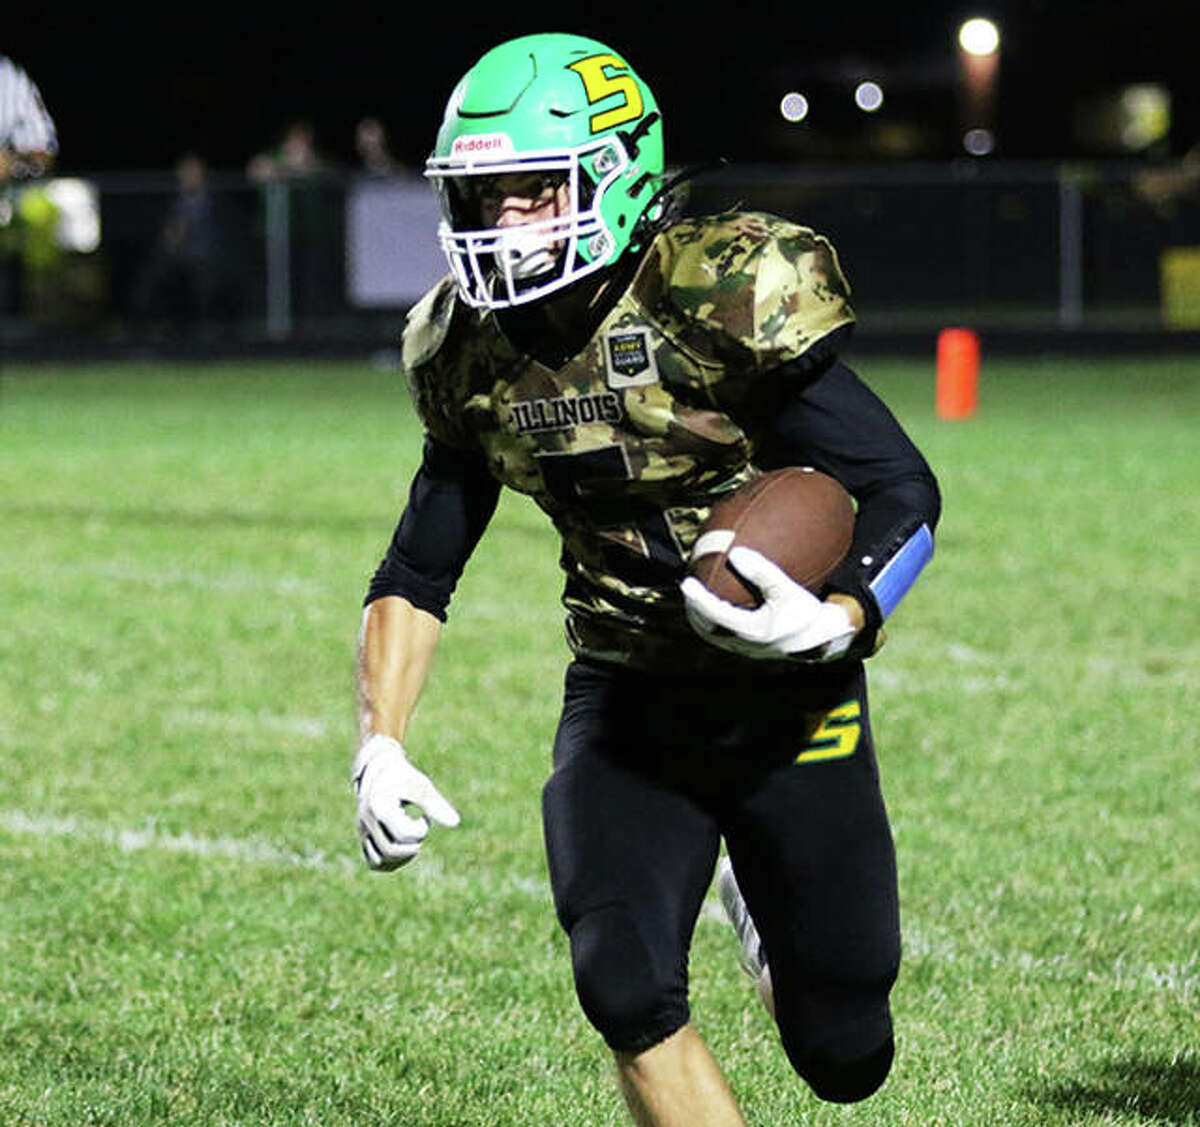 Southwestern's Gavin Day finds running room for some of his 95 rushing yards Friday night at Knapp Field in Piasa.